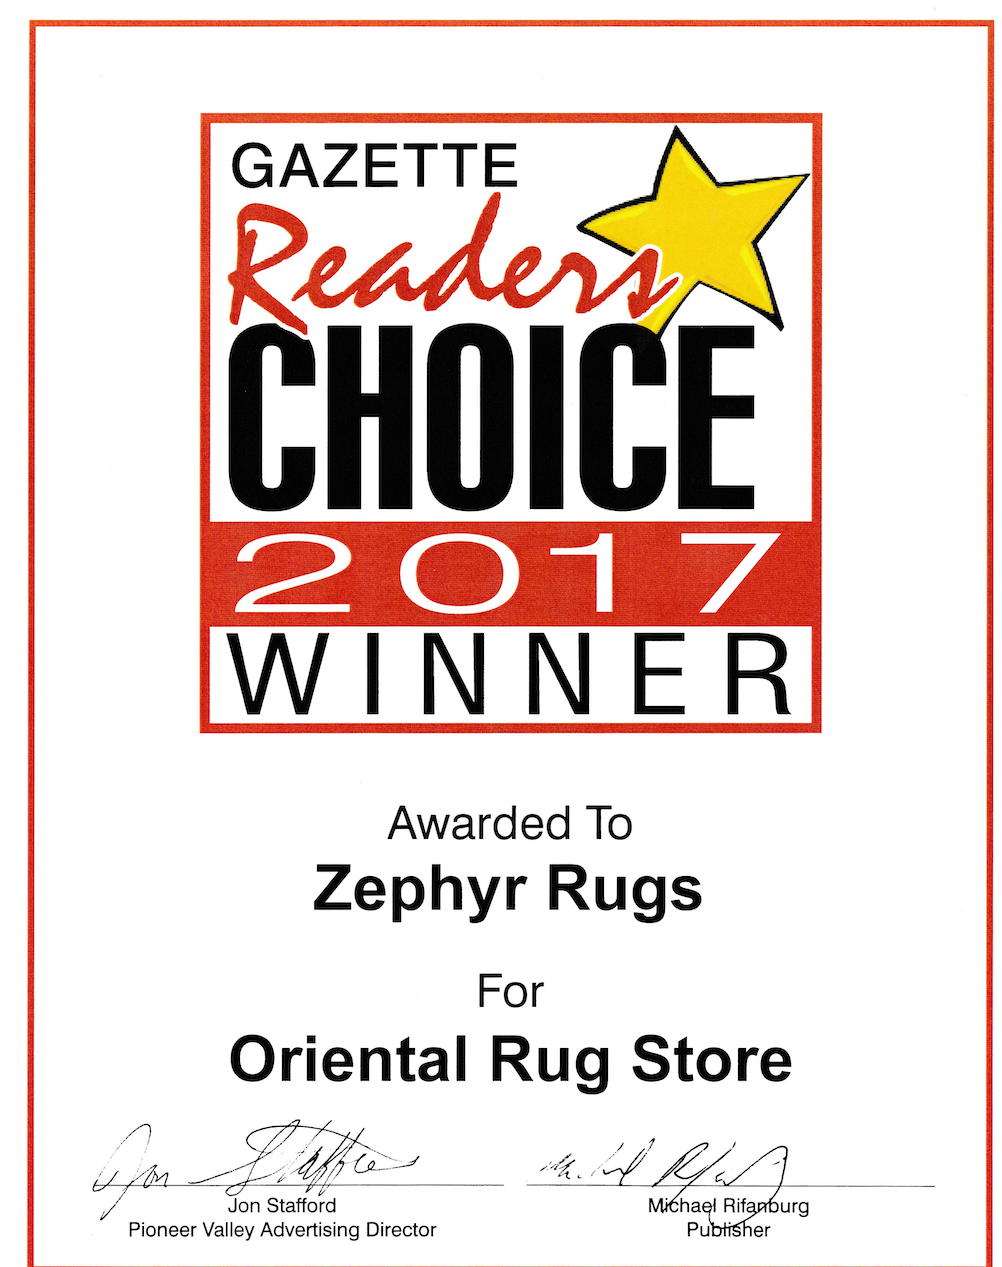 Zephyr Rugs Voted Best Oriental Rug Store by Hampshire Gazette Reader's Choice 2017